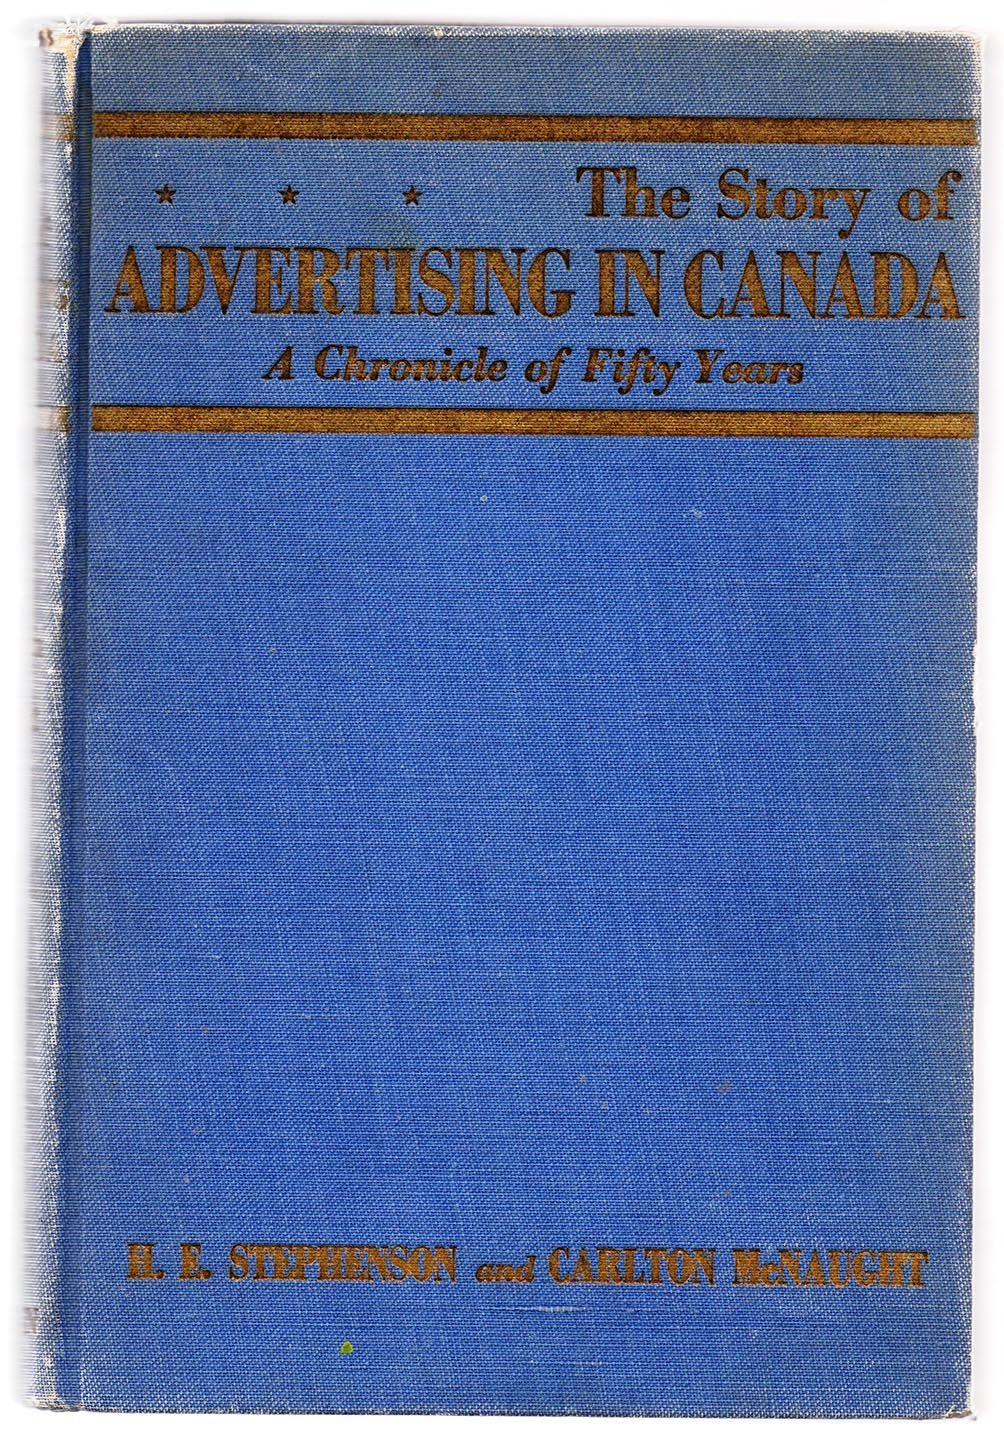 The Story of Advertising in Canada: A Chronicle of Fifty Years